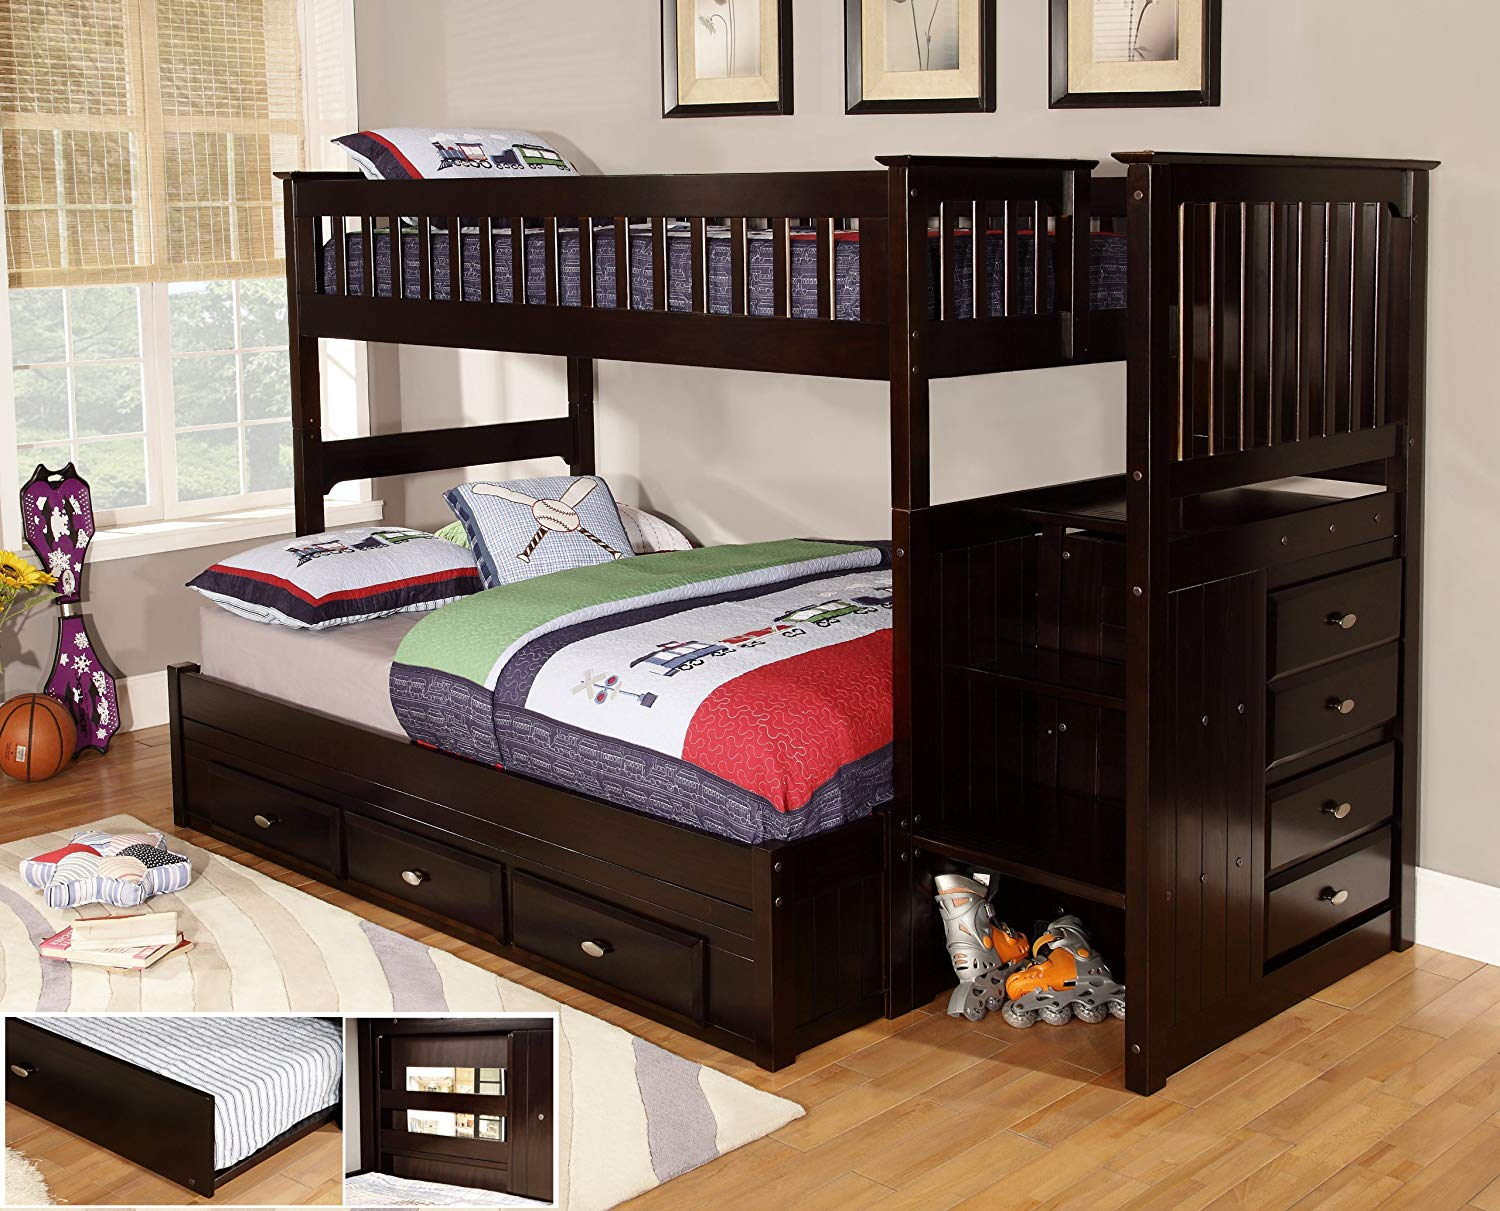 full over full bunk beds with trundle and stairs amazon.com: discovery world furniture twin over full staircase bunk bed VBRHRSC